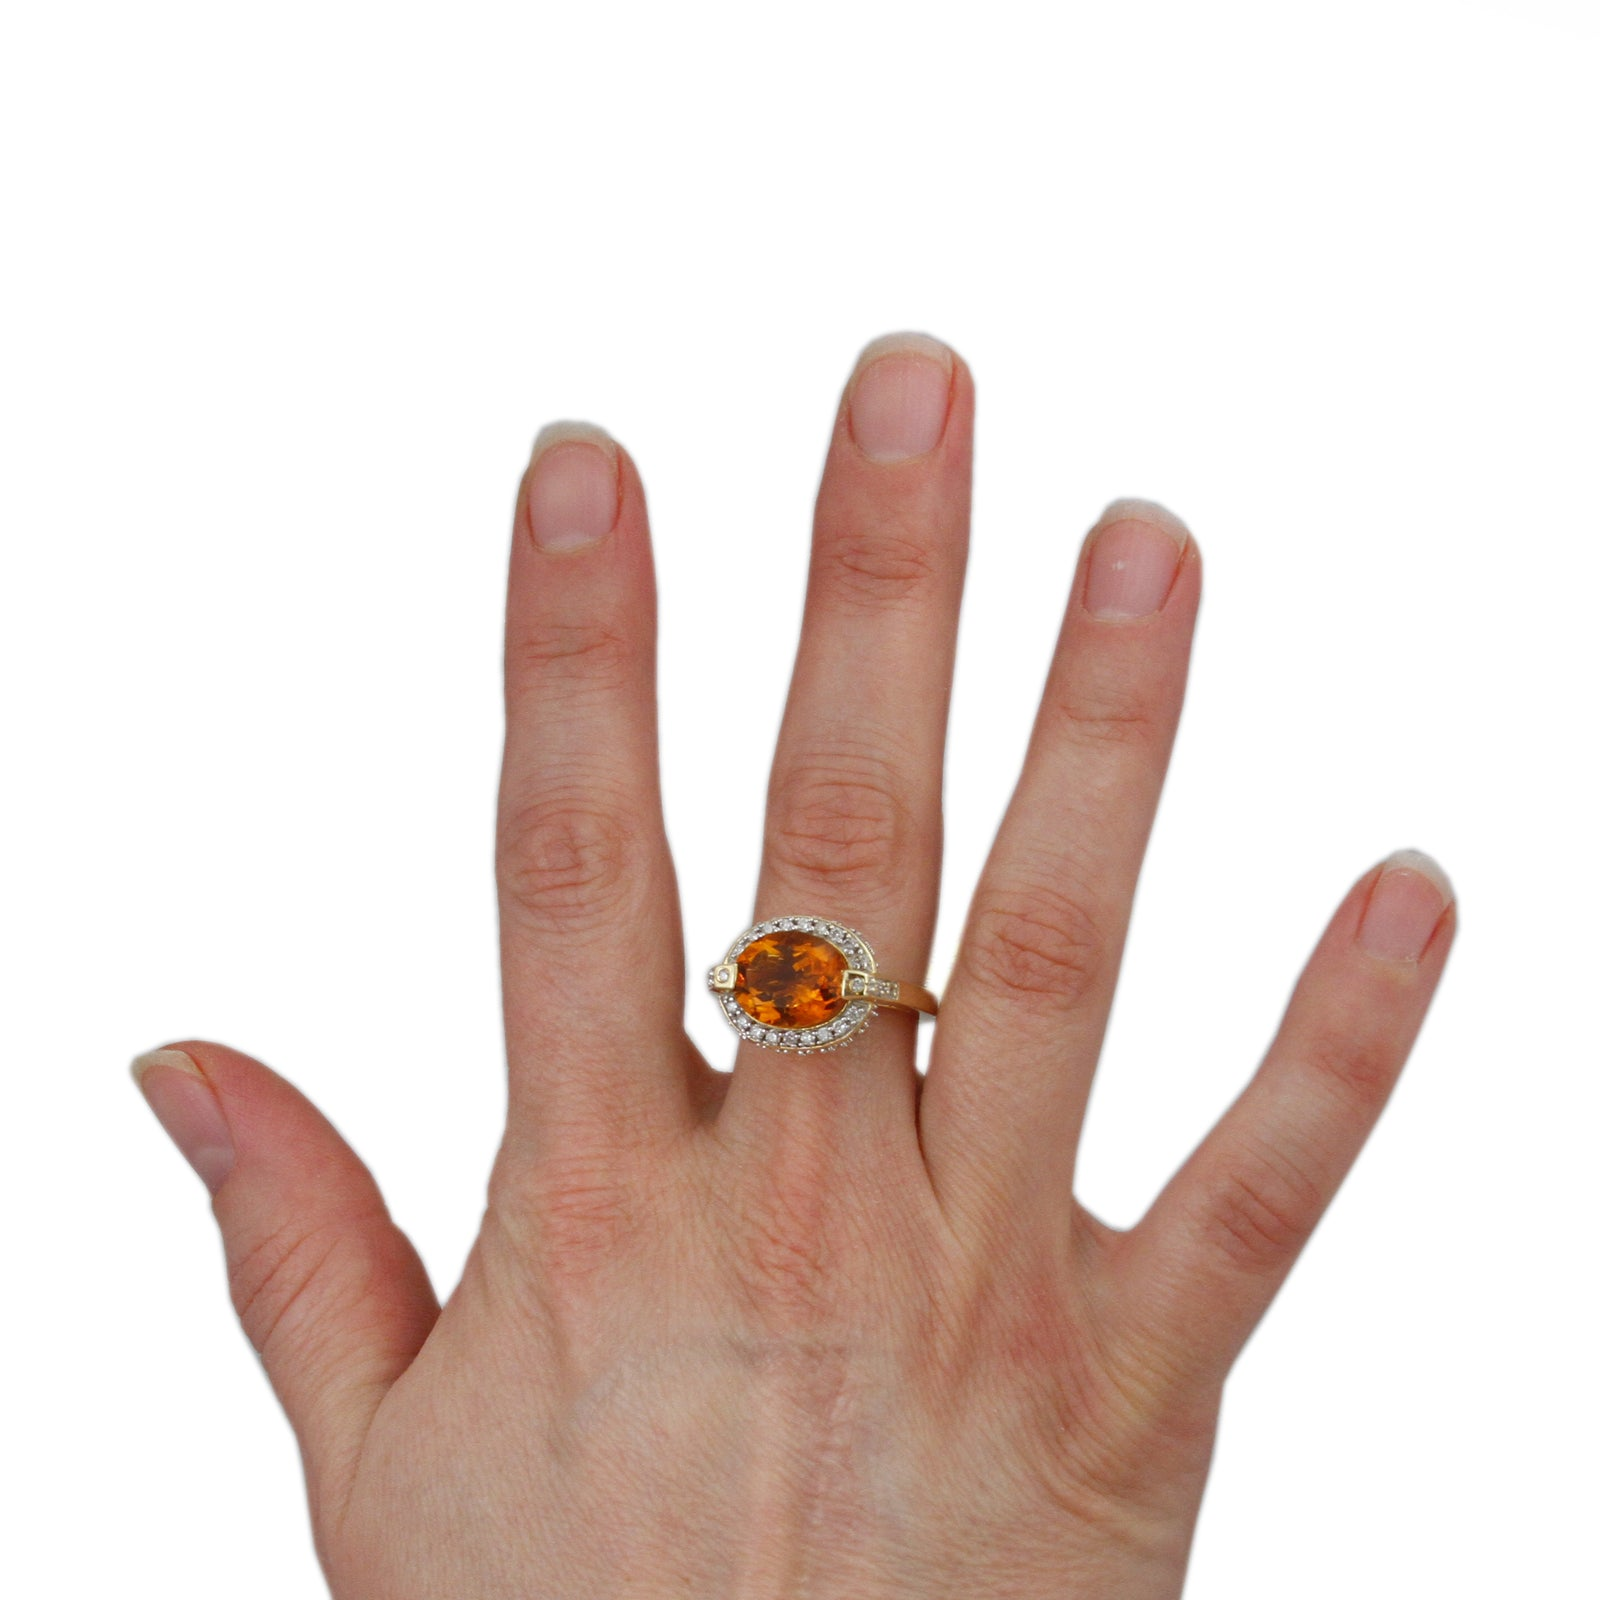 Oval Citrine Ring w/ 1/2cttw Diamond Bezel & Cathedral Mounting in 14k Yellow Gold-3